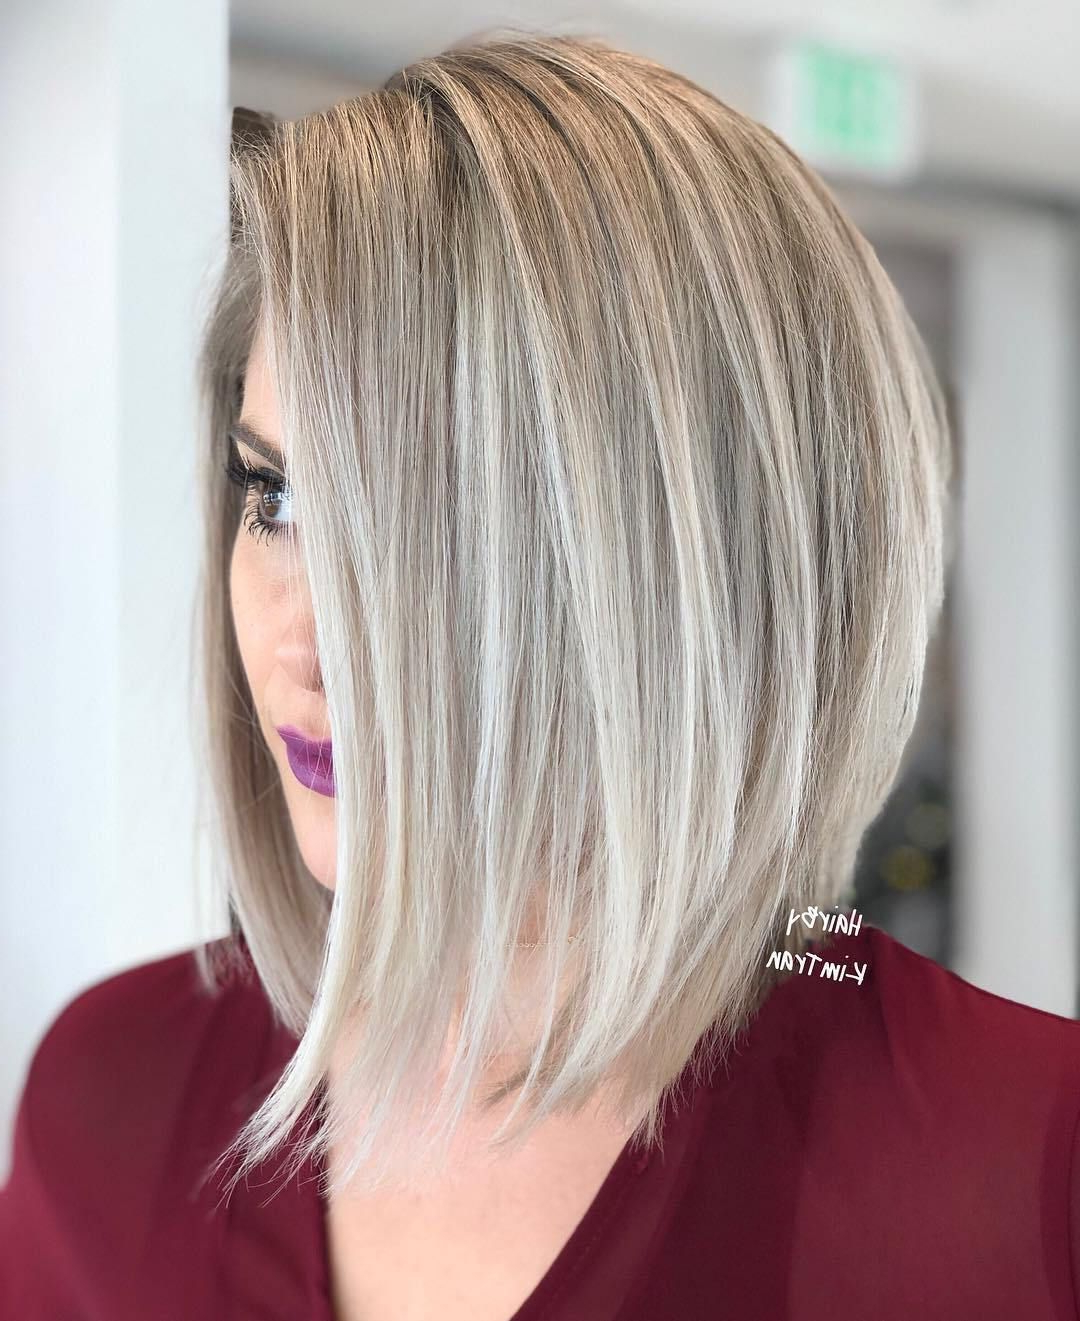 60 Layered Bob Styles: Modern Haircuts With Layers For Any With Current Razored Blonde Bob Haircuts With Bangs (View 5 of 20)